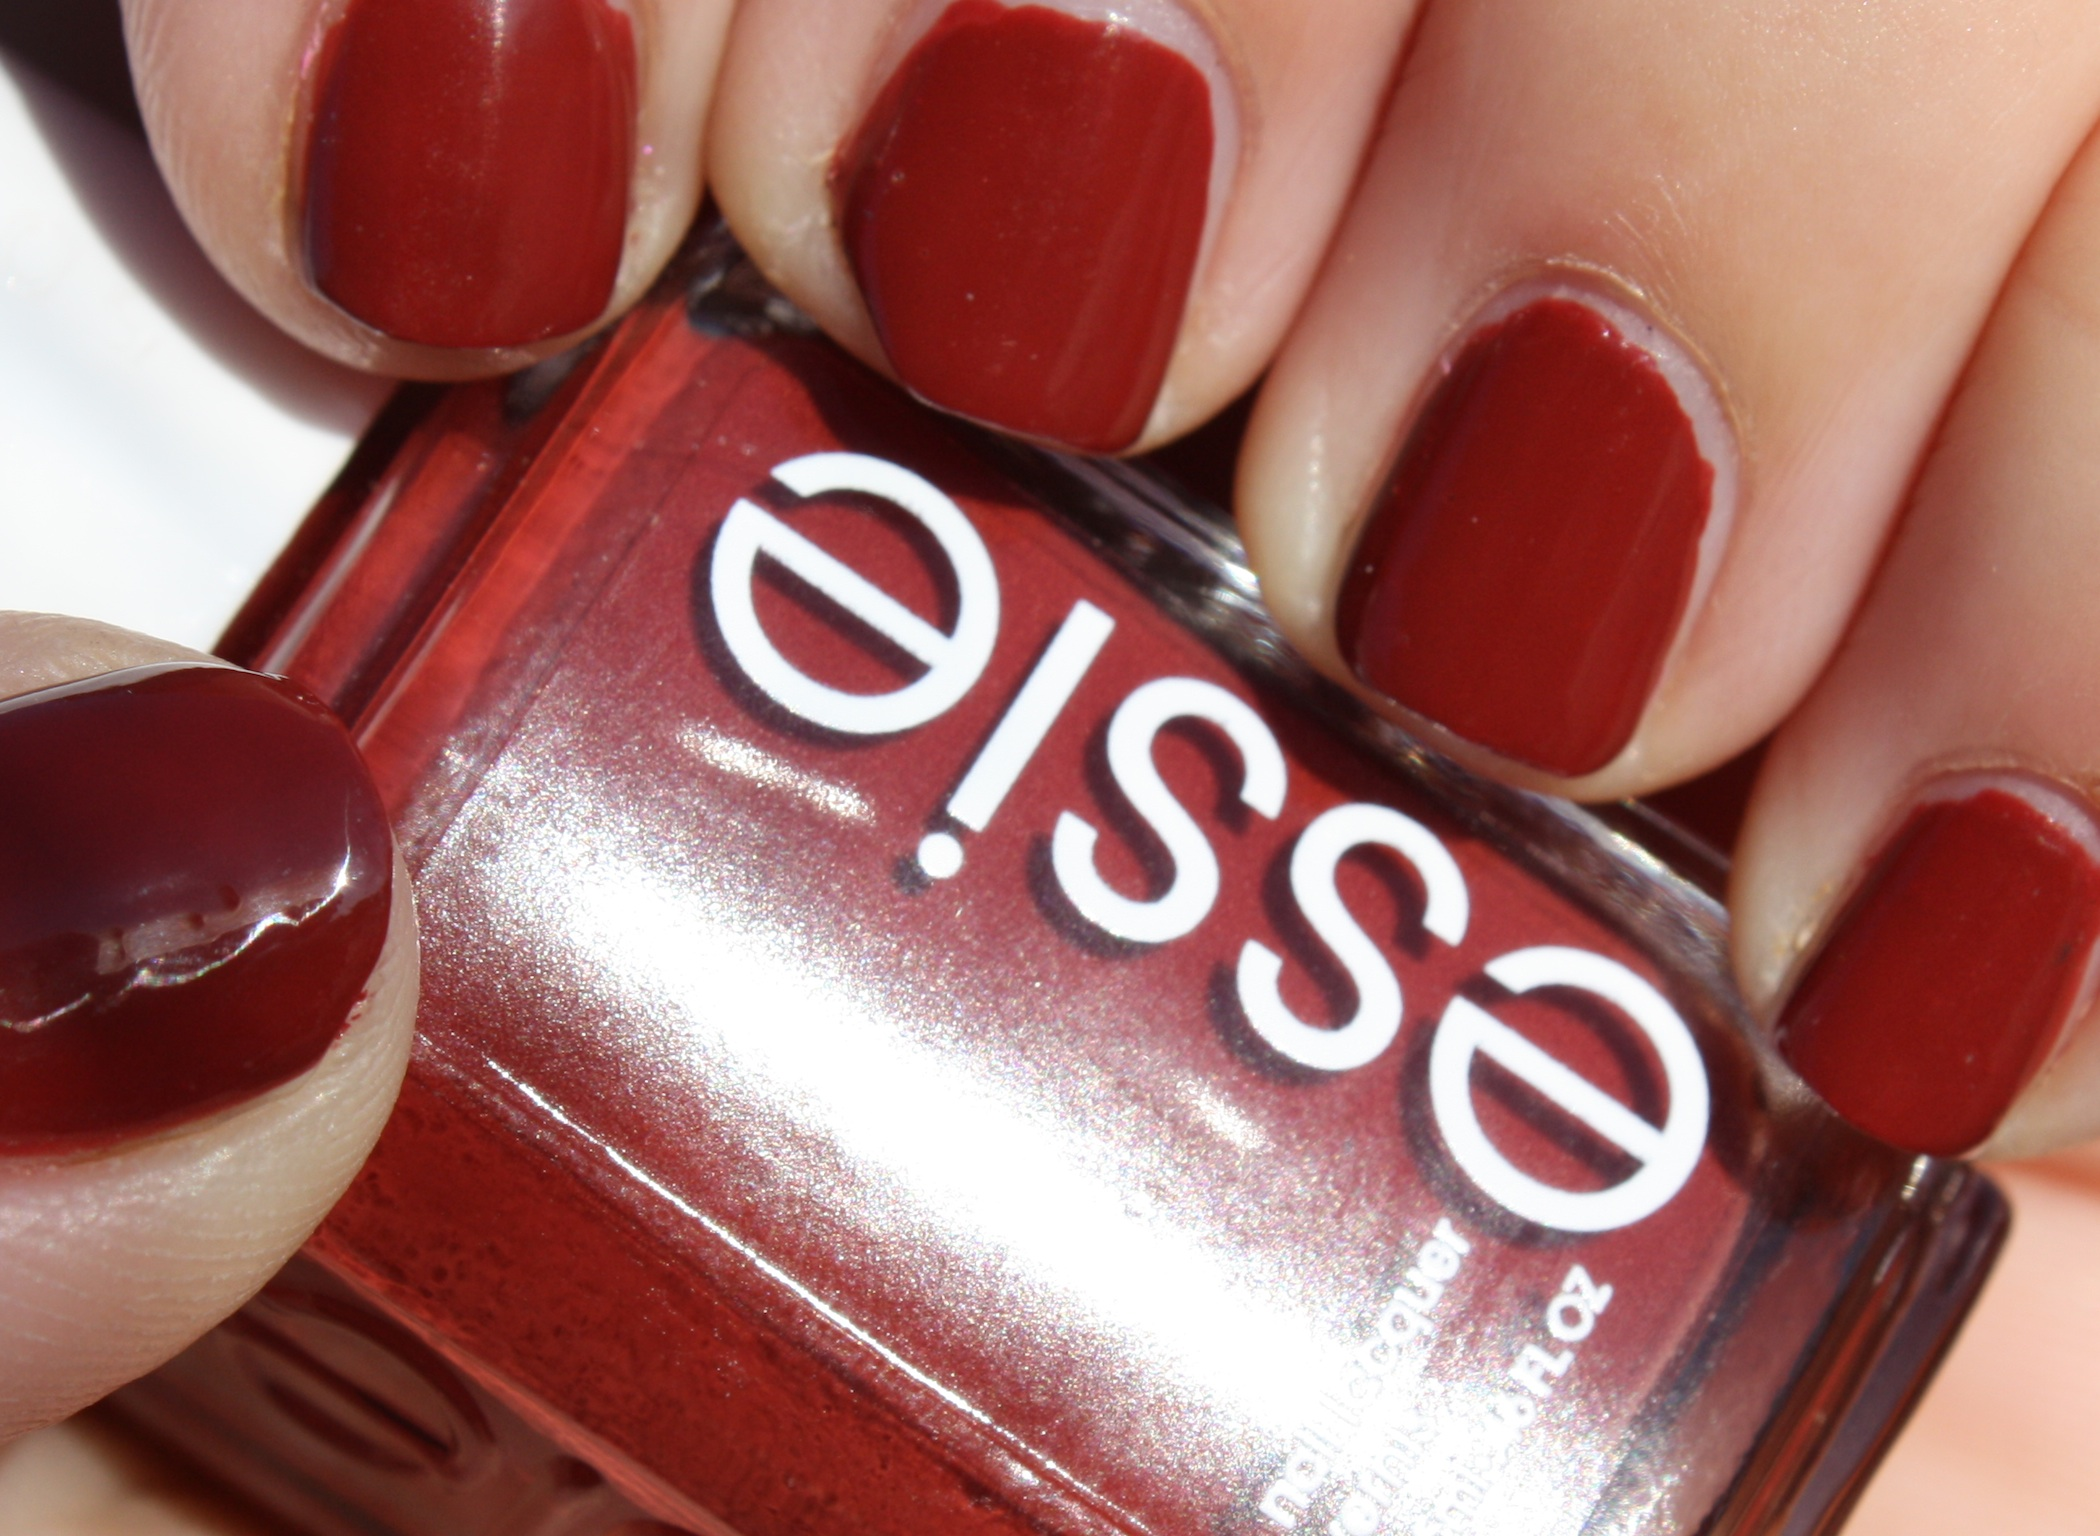 Essie Spinning Again – horrendous color